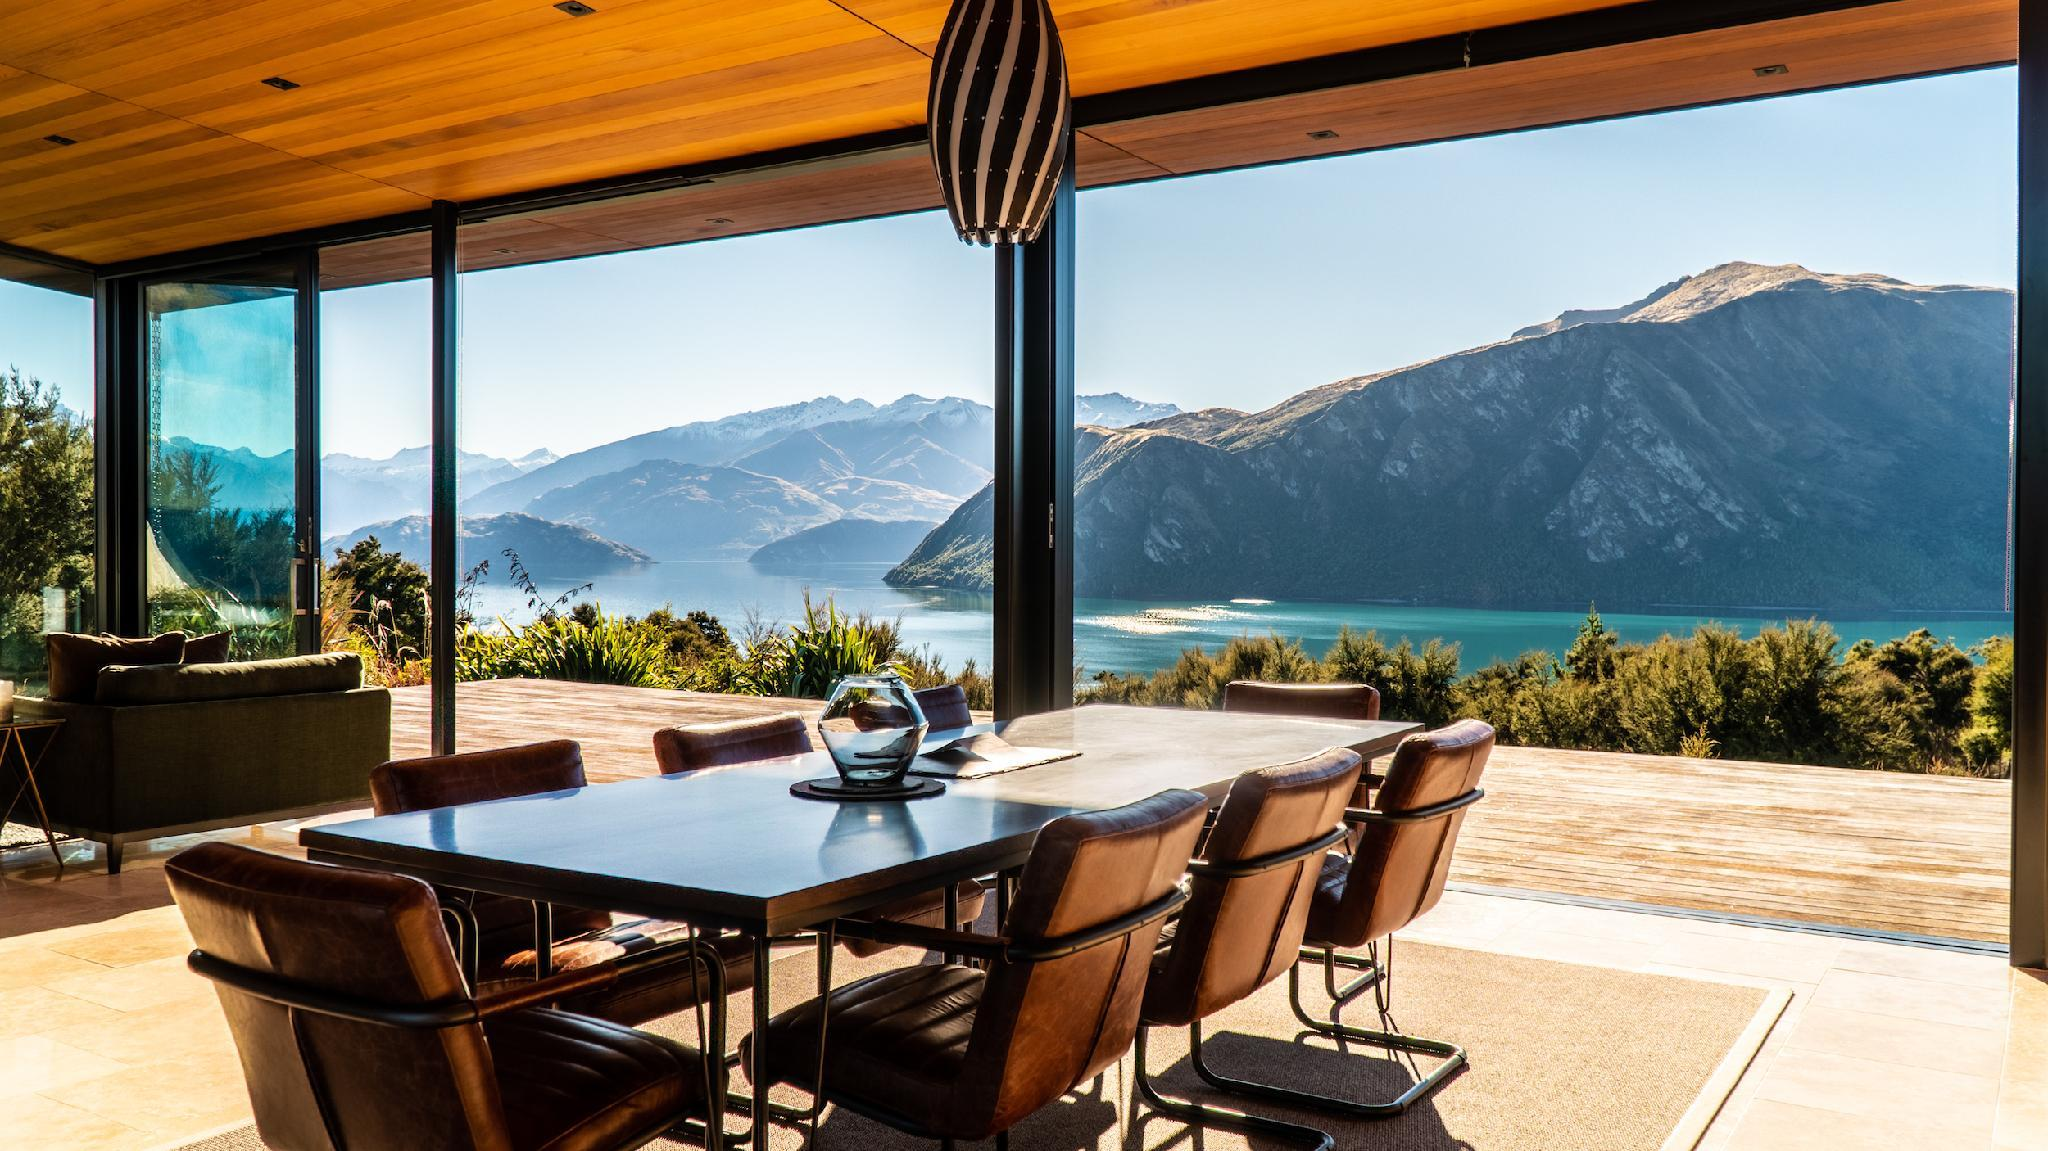 Breathtaking Views From His Architectural Home.